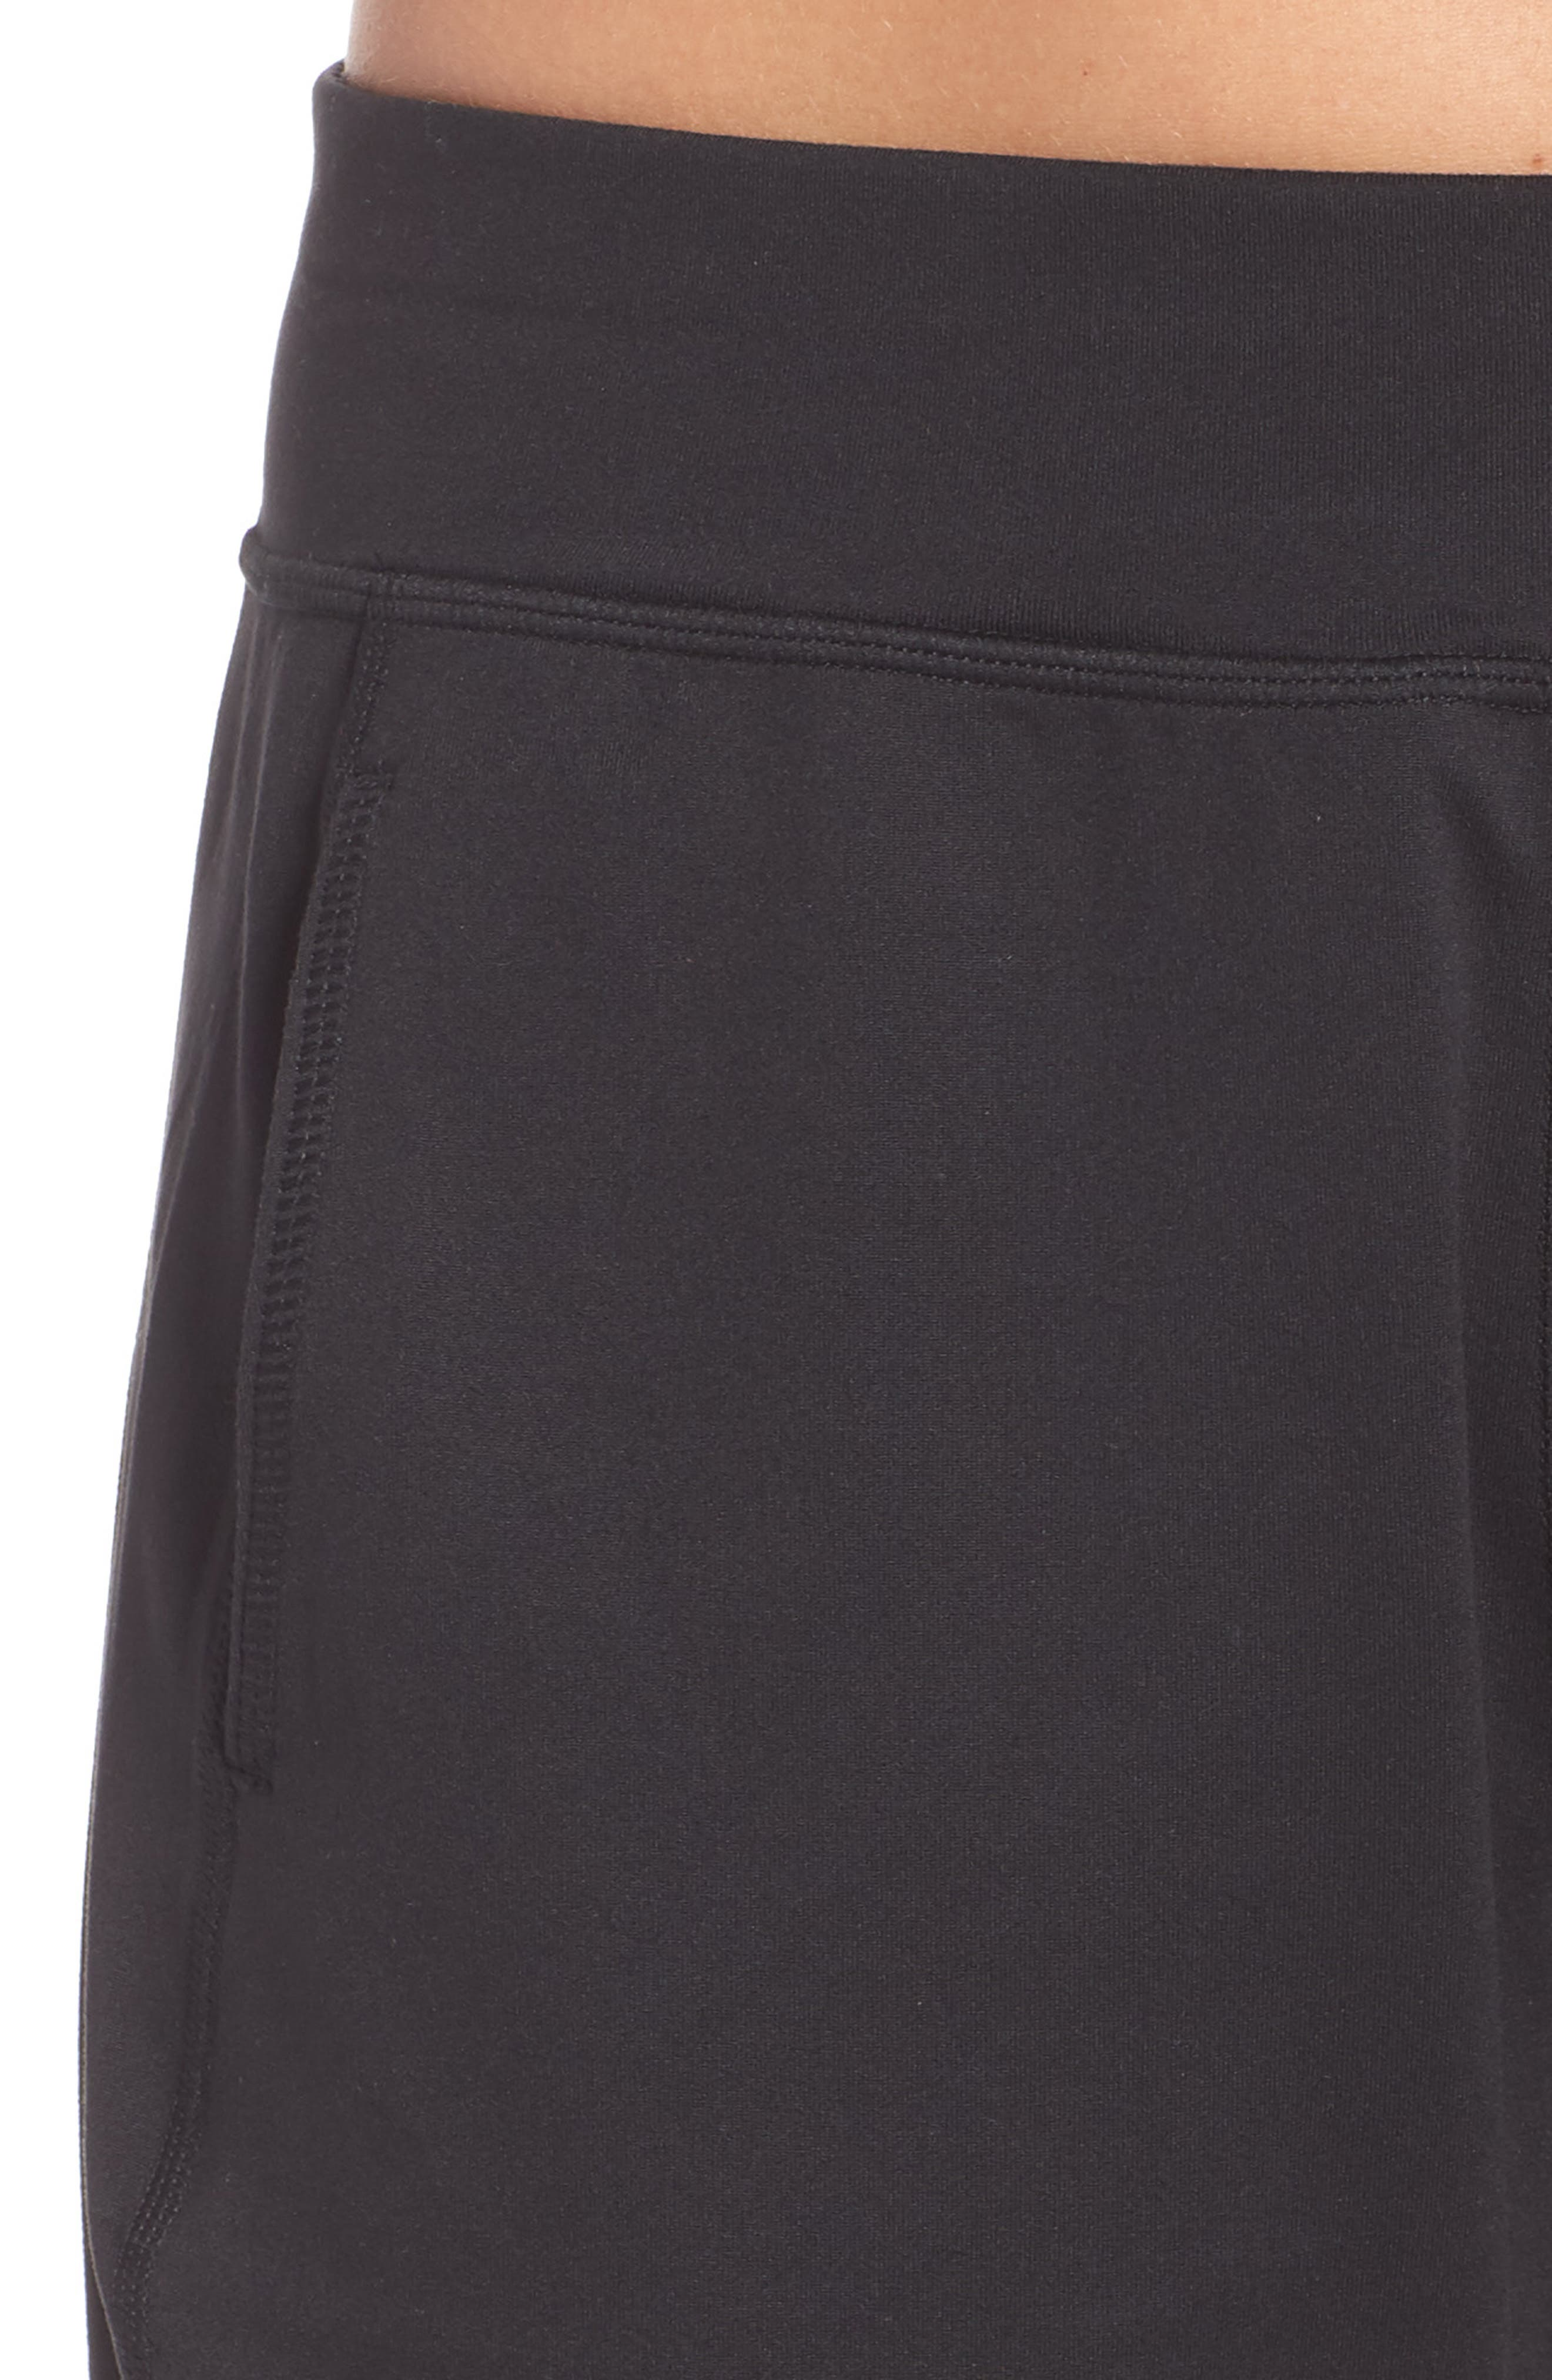 Garudasana Yoga Trousers,                             Alternate thumbnail 4, color,                             BLACK